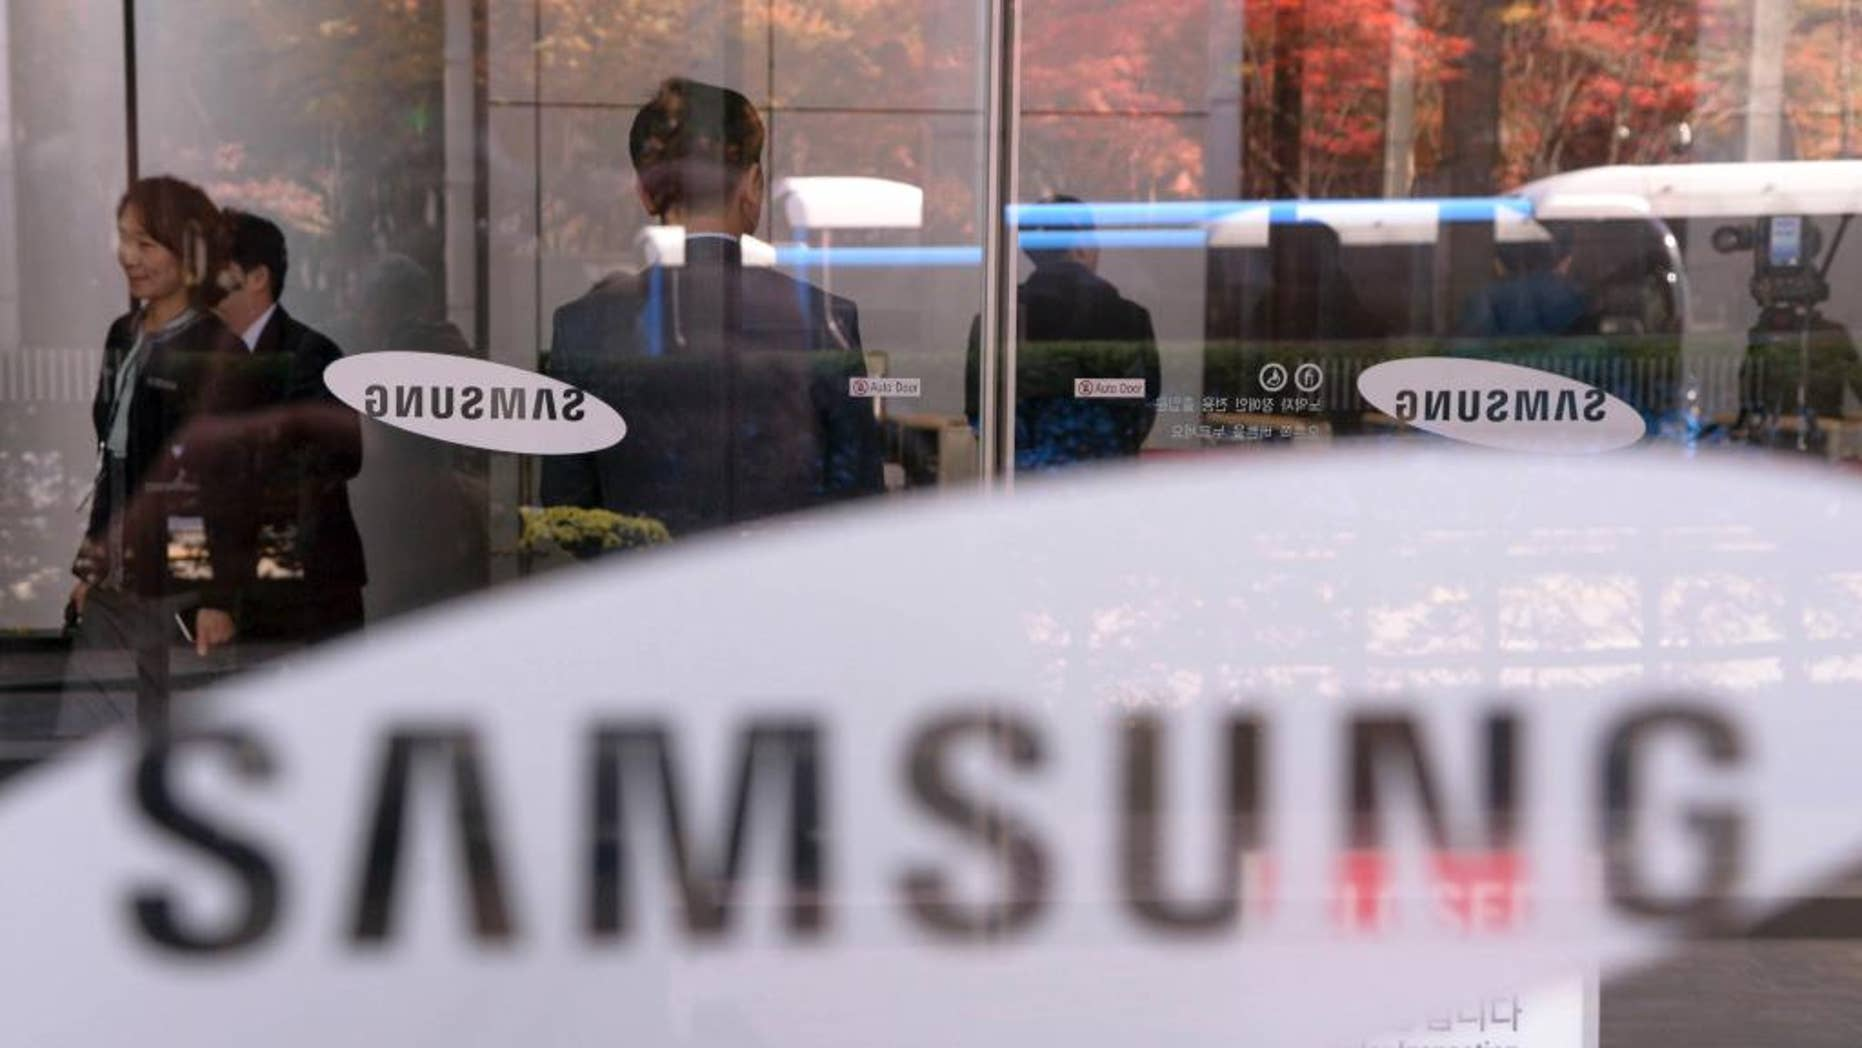 Employees walk past logos of Samsung Group at its headquarters in Seoul, South Korea, Wednesday, Nov. 23, 2016. South Korean prosecutors investigating a corruption scandal surrounding the country's president and her friend raided on Wednesday a unit of the country's largest business group, Samsung, and the national pension fund, as public outrage grows over Samsung's alleged link with the scandal. (Jang Se-young/Newsis via AP)